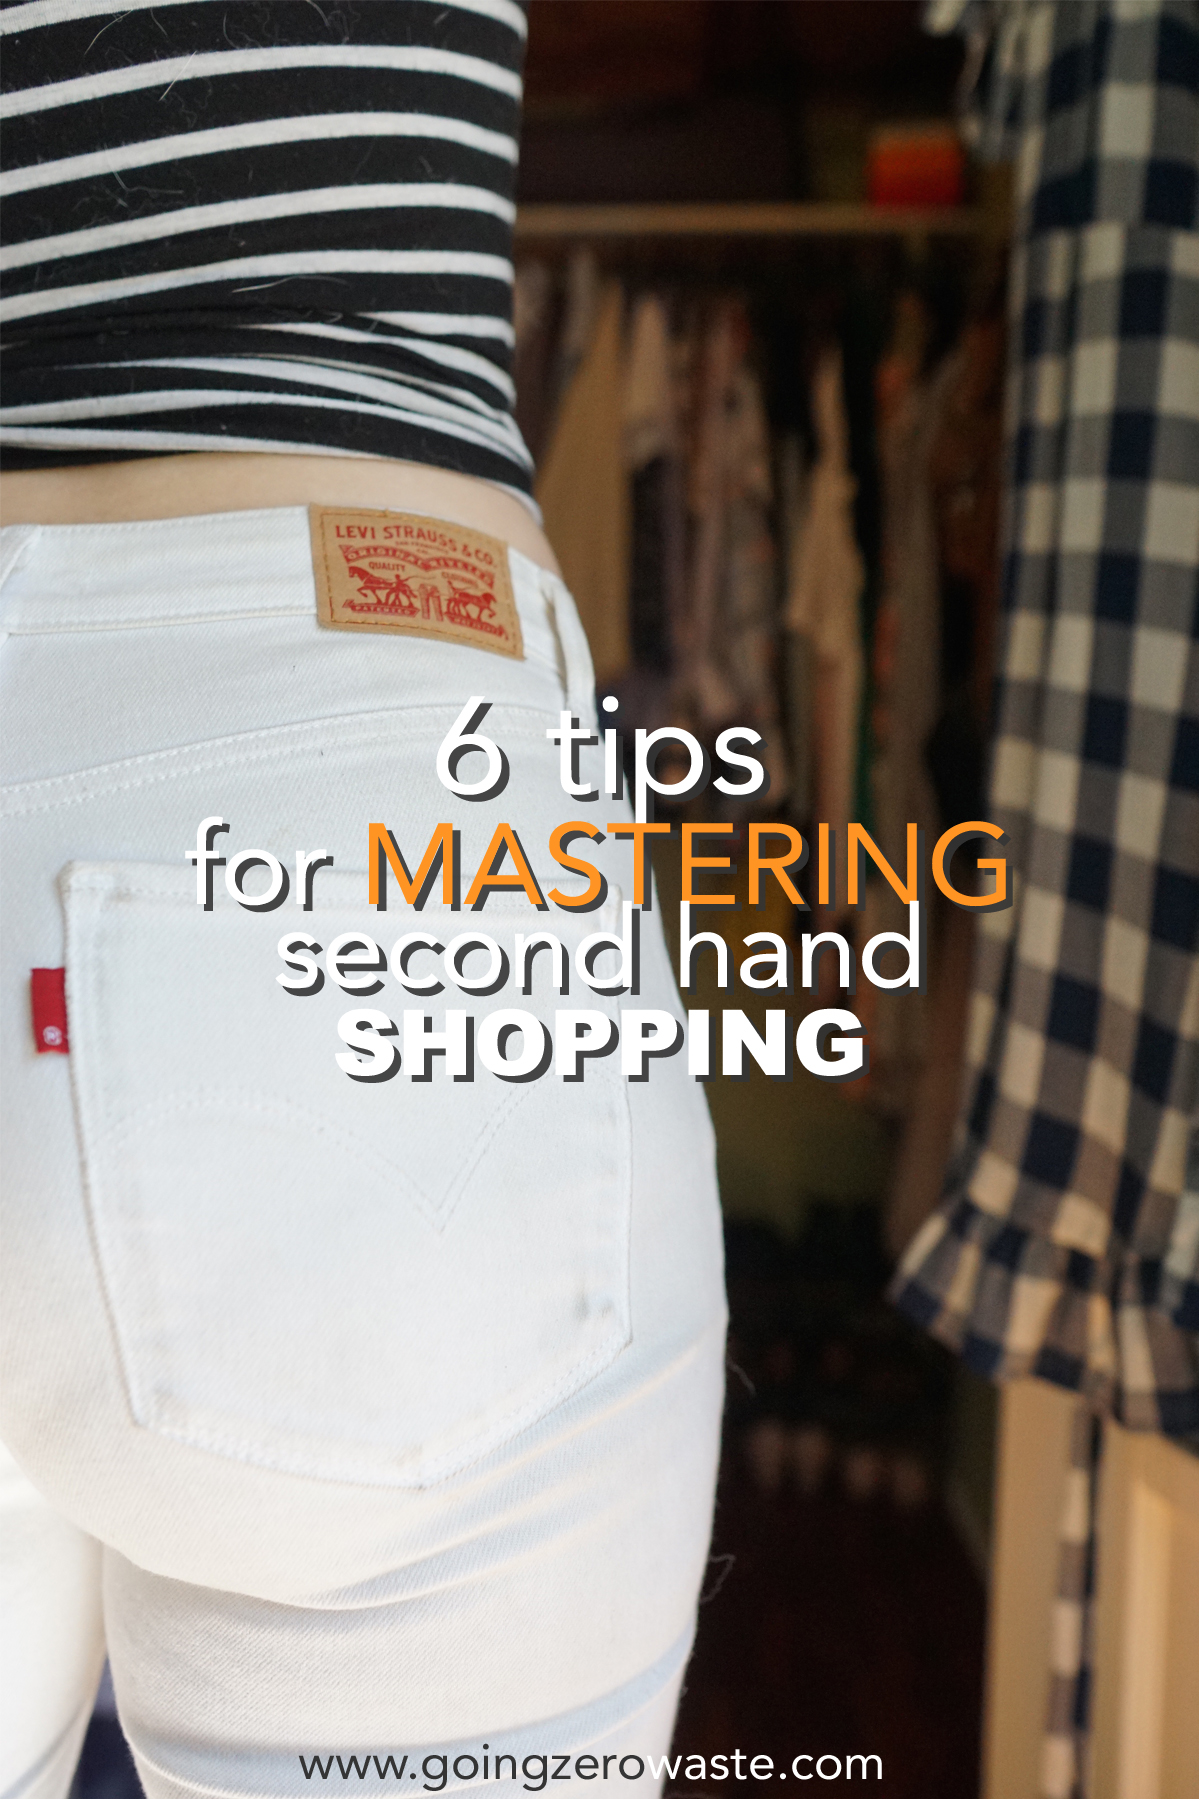 08a87fb19 6 Tips for Mastering Secondhand Shopping - Going Zero Waste